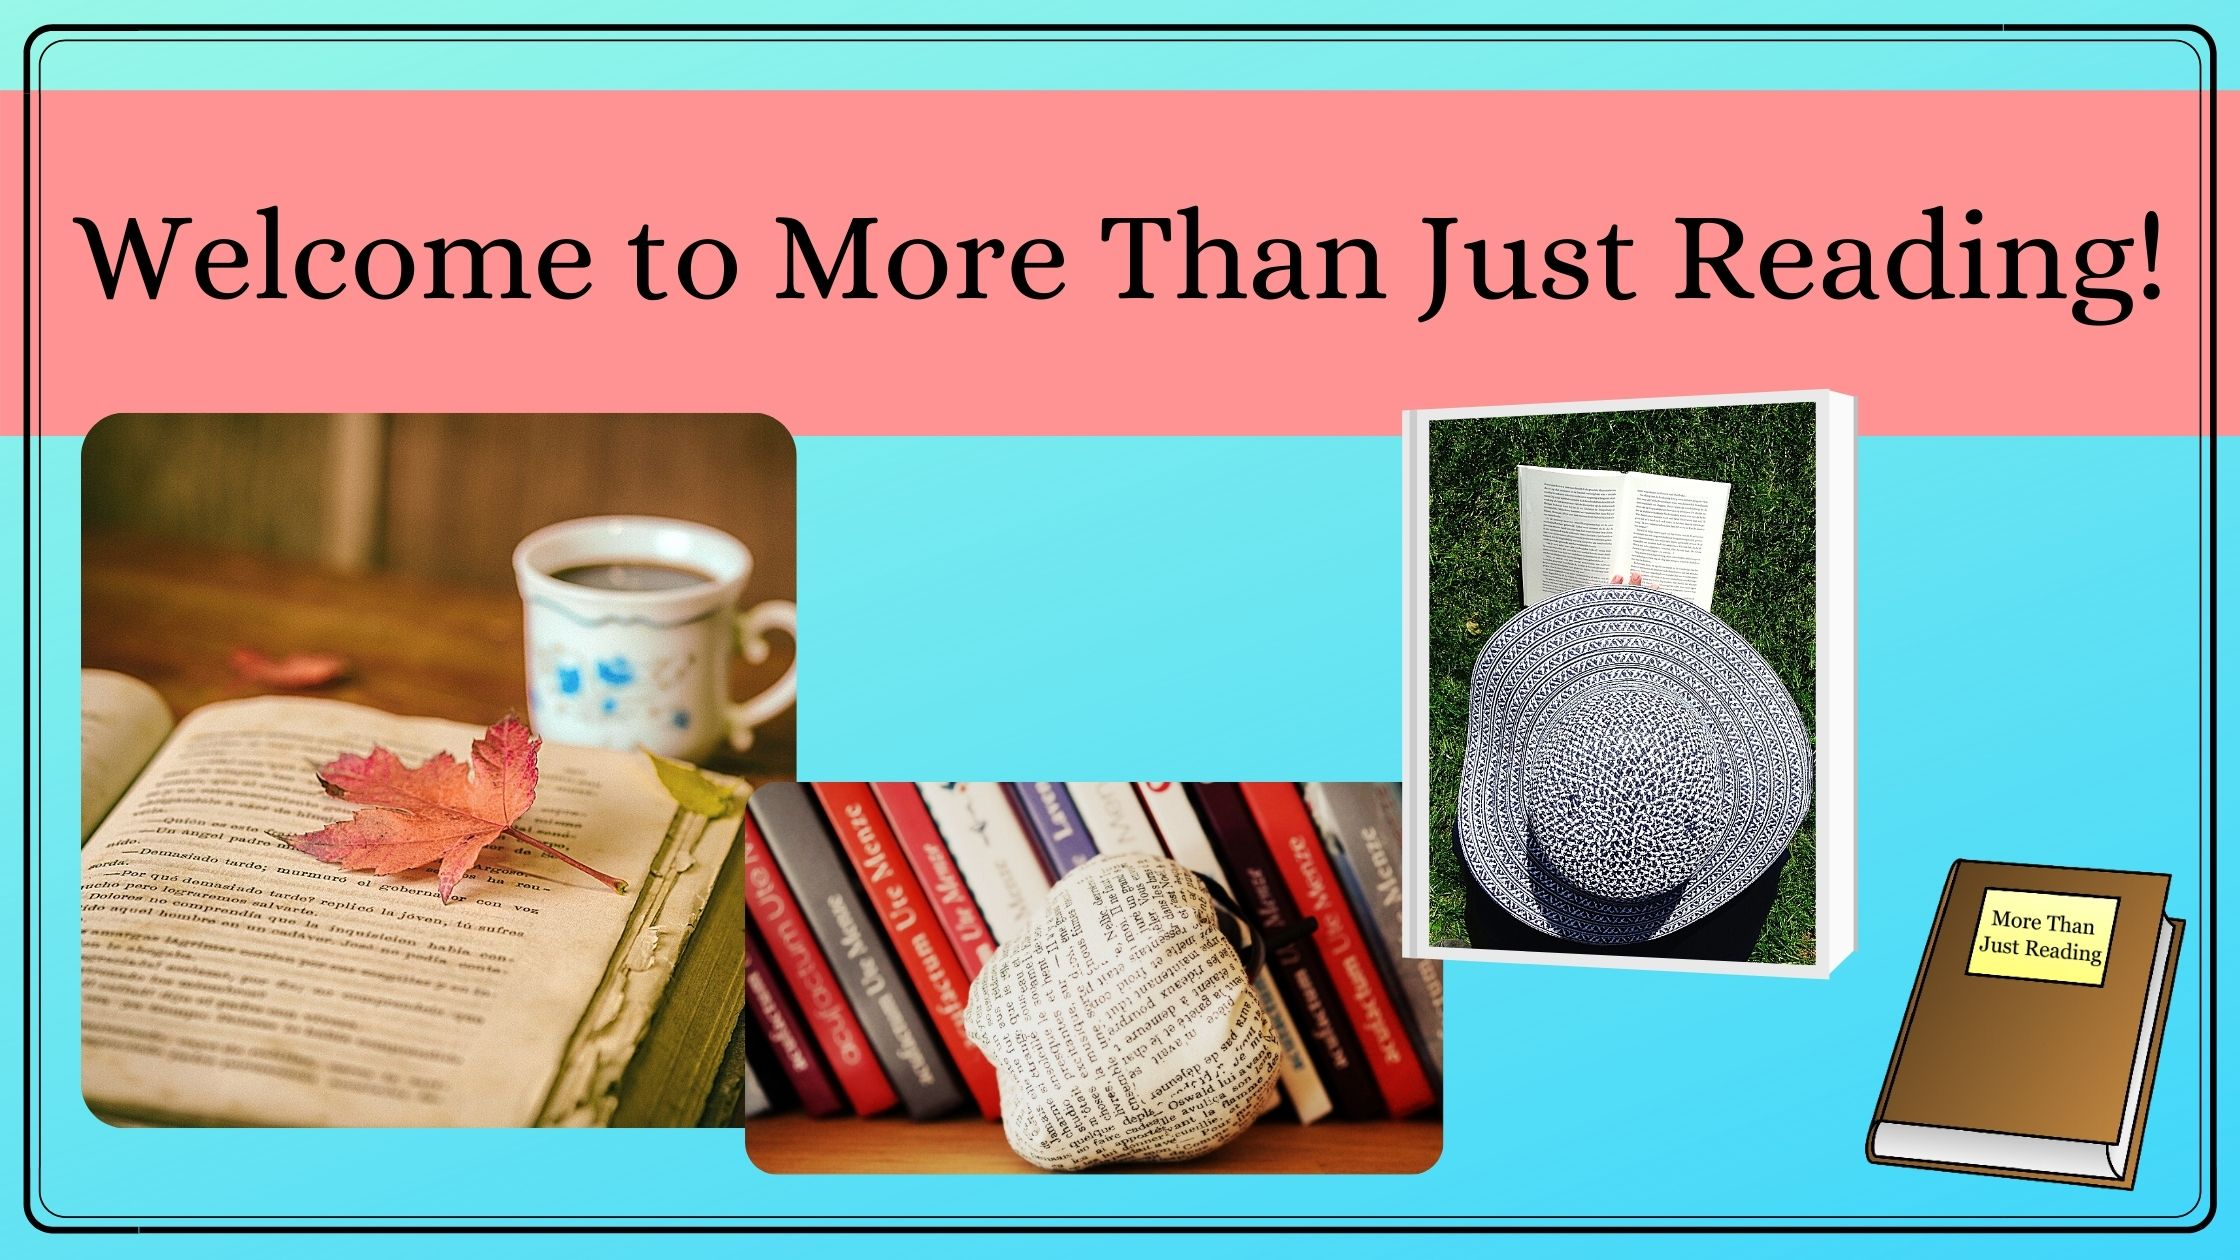 Welcome to More Than Just Reading